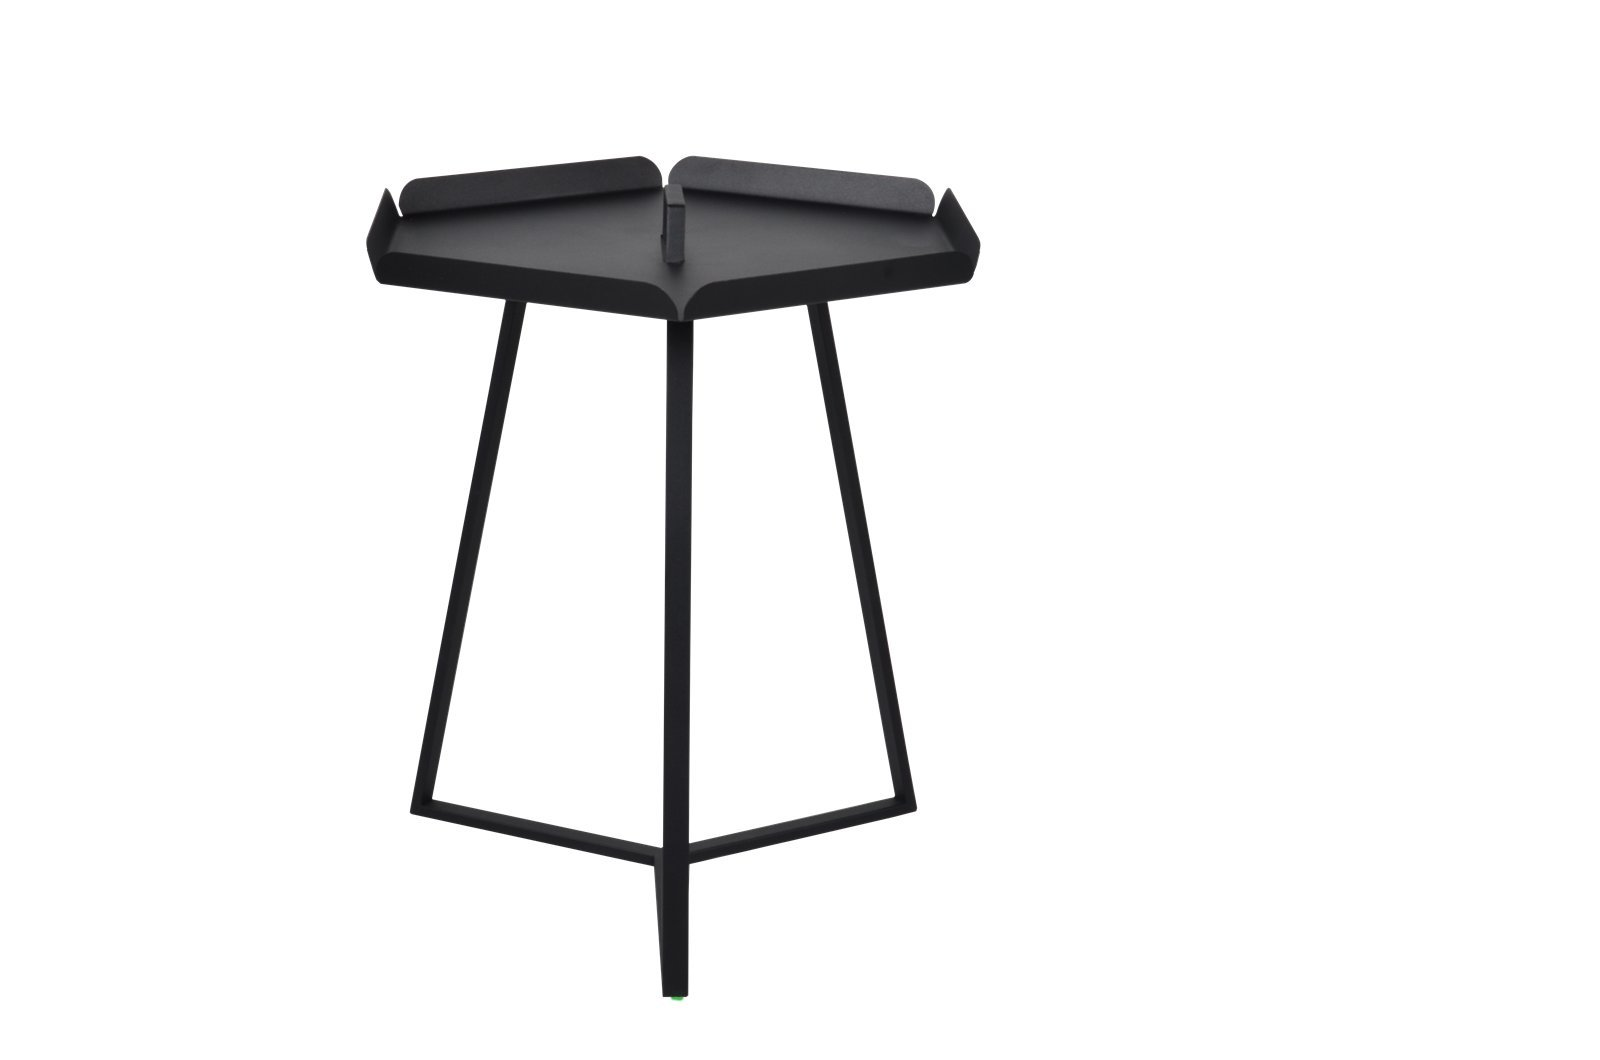 EMPIRICA Black Versa Table: Large - Premium all-steel sturdy construction Timeless and modern -- sophisticated designer Table Heavy duty, Premium quality, unbeatable value - patio-tables, patio-furniture, patio - 514zFHCF23L -